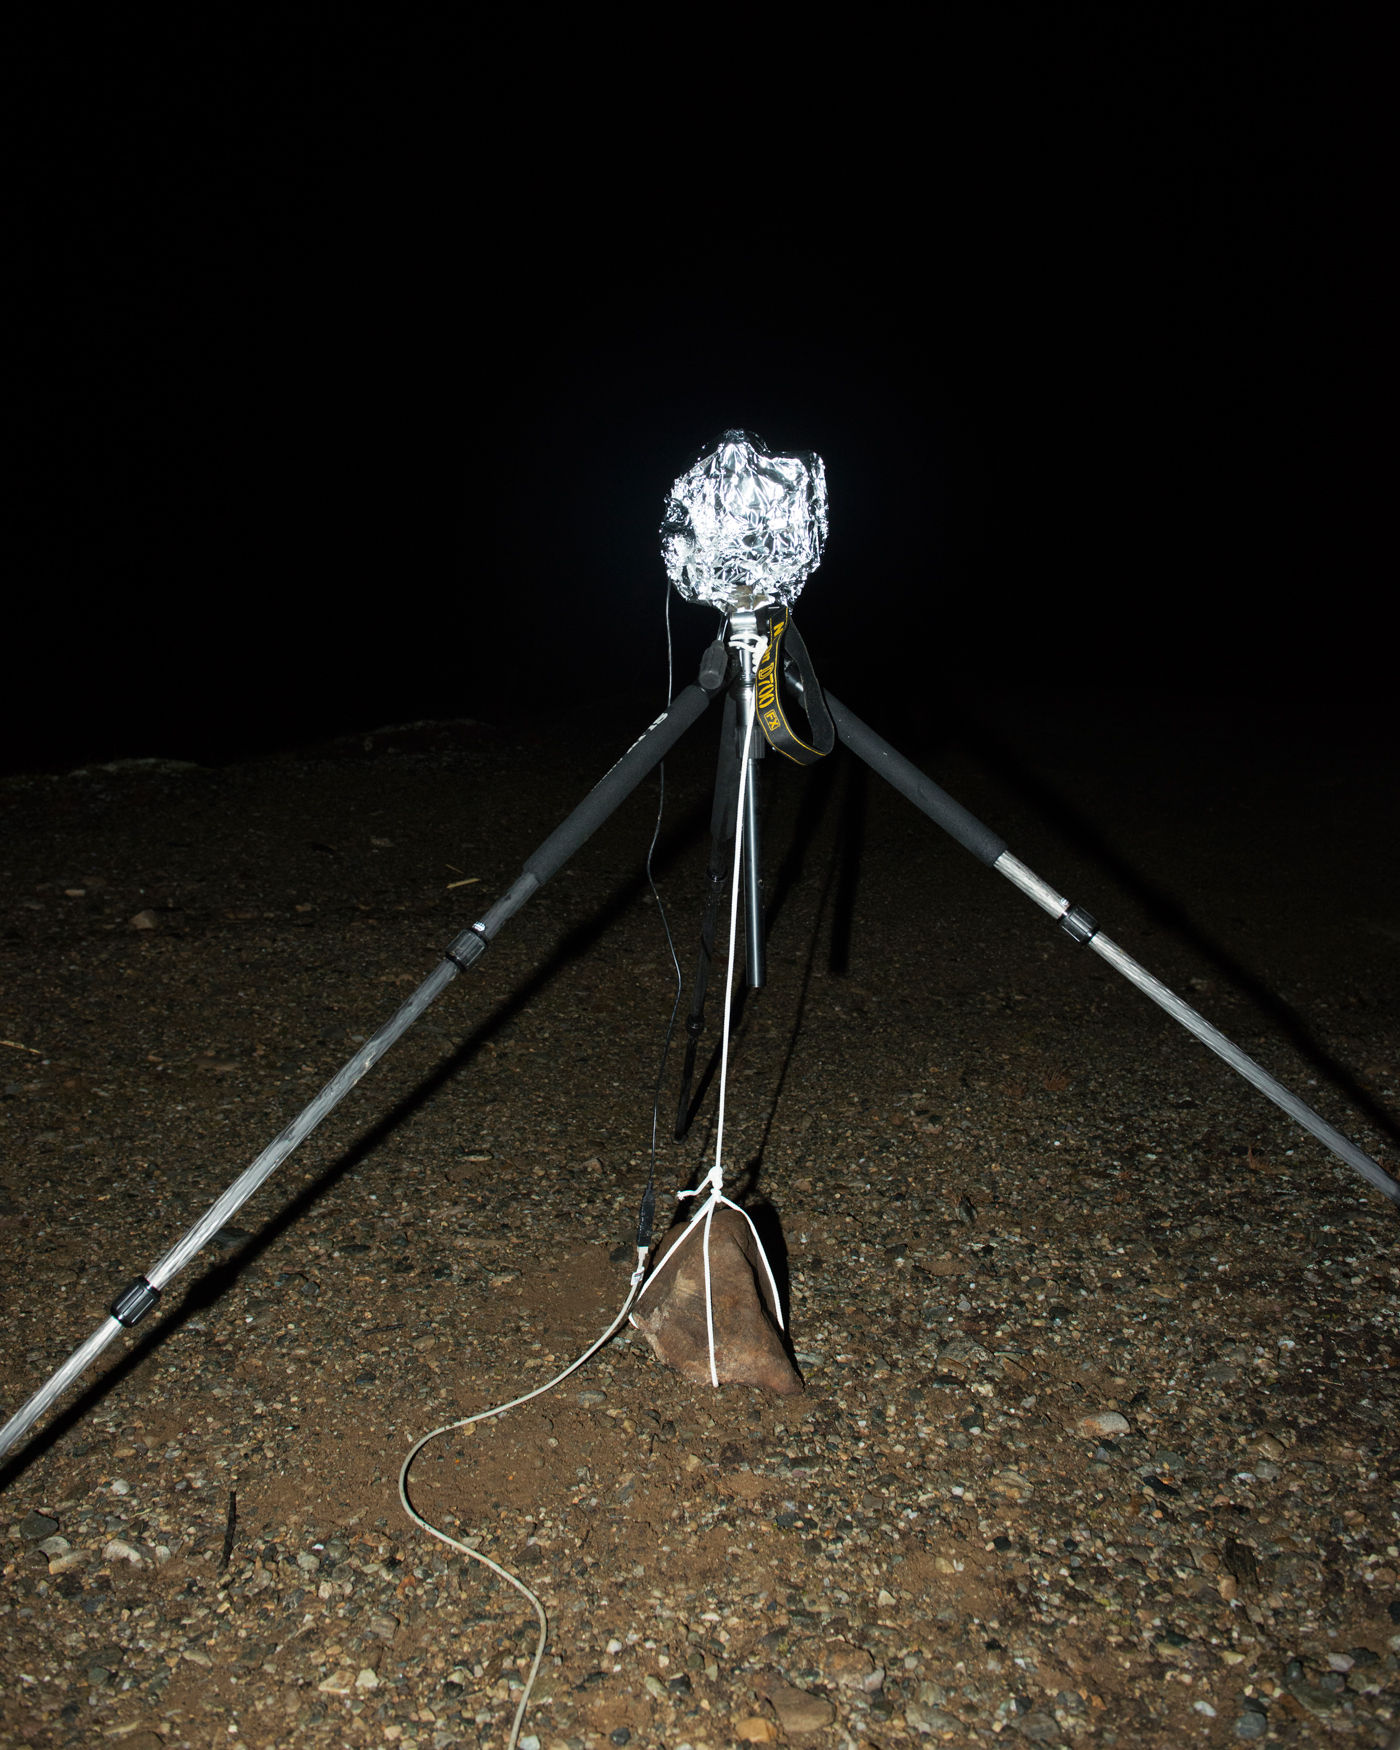 A weather-proofed time-lapse camera at Science Camp 2013 in Hessdalen.